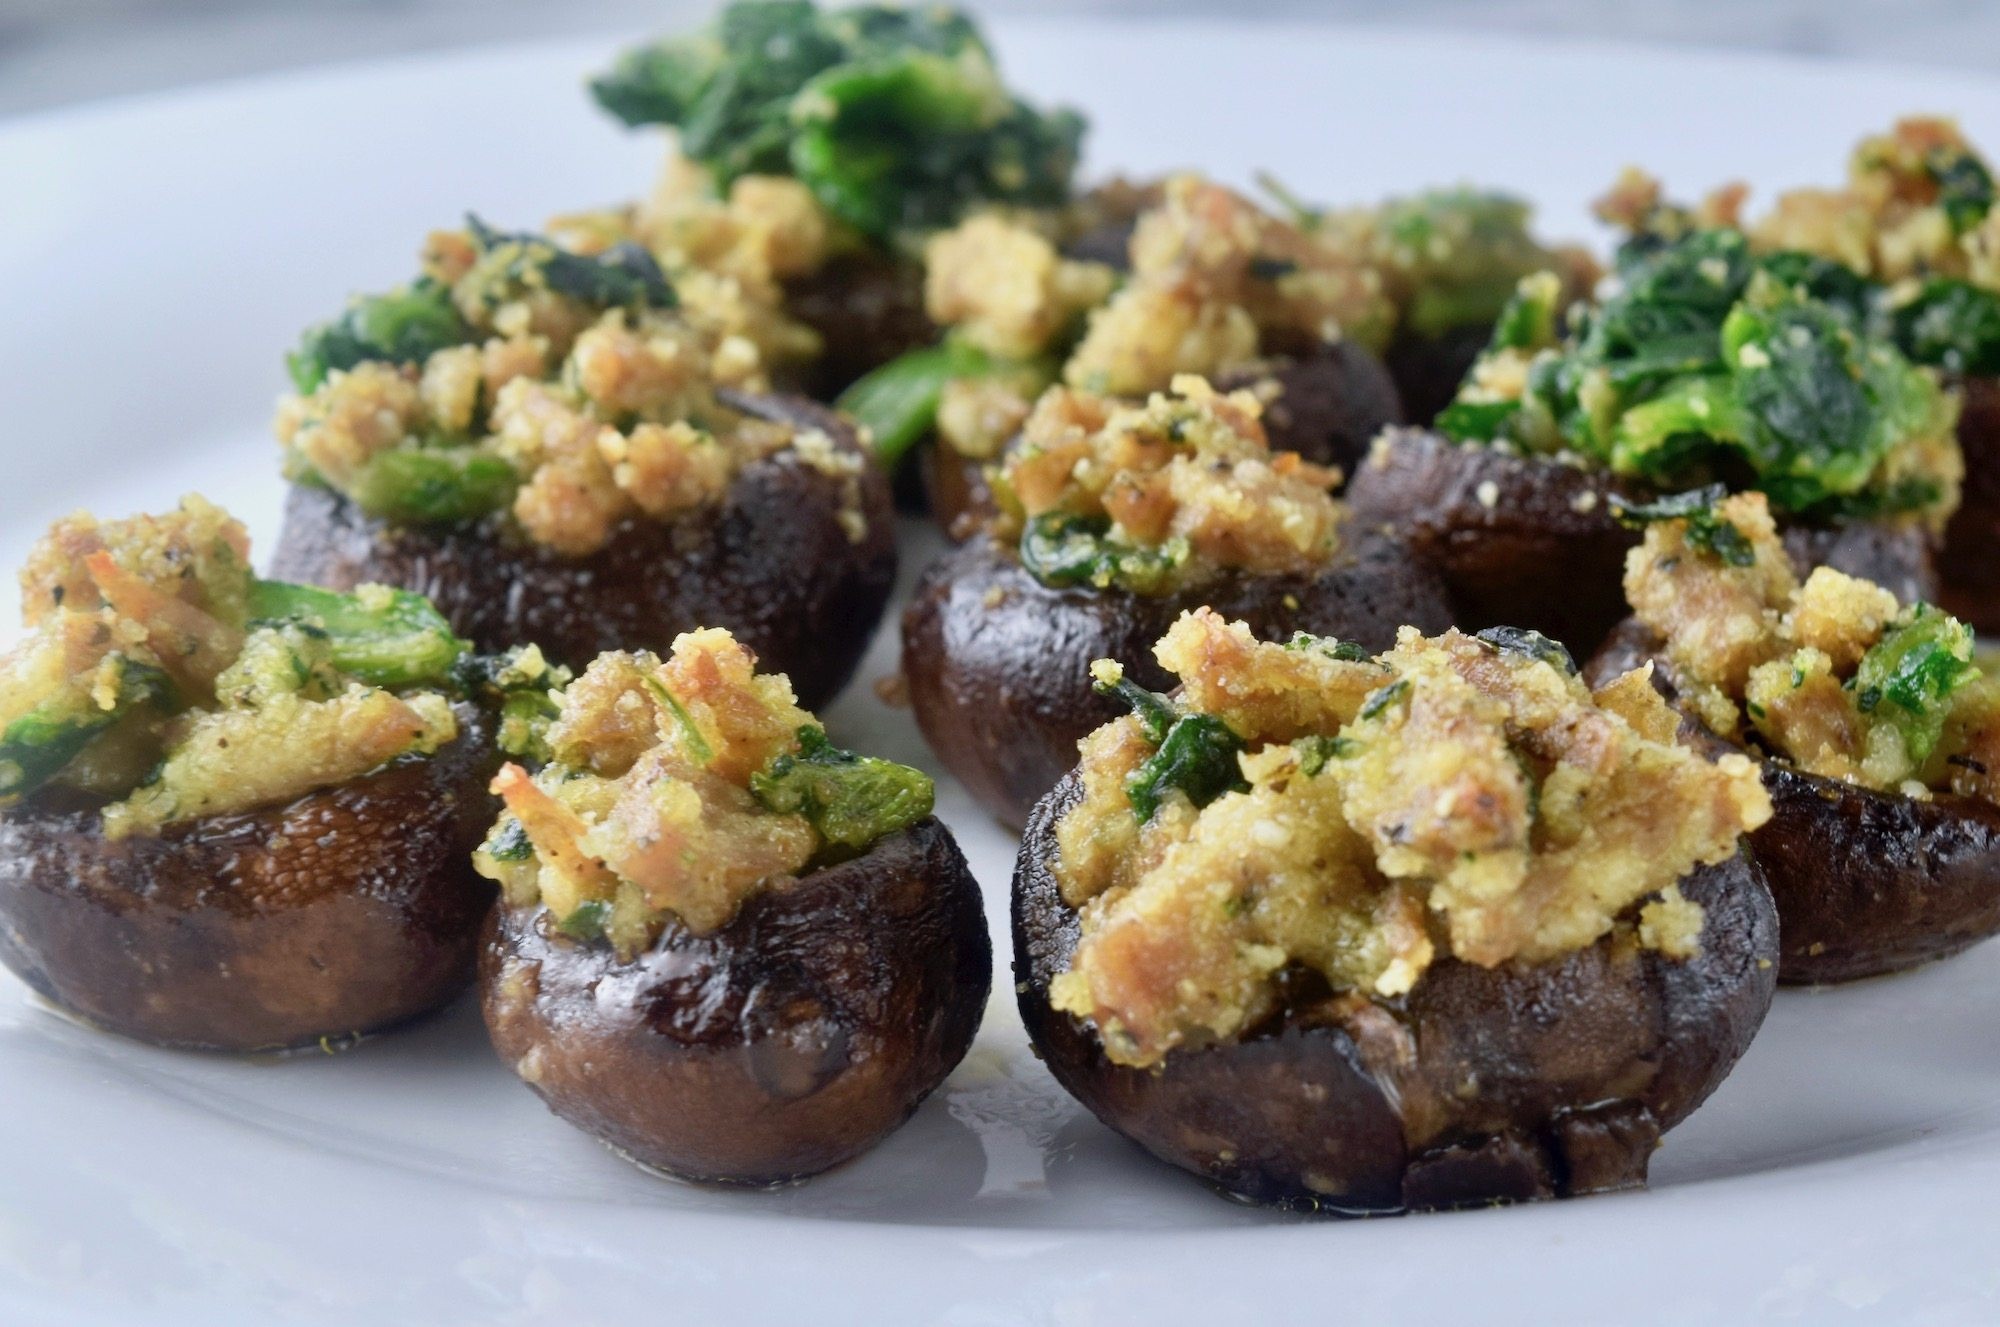 Stuffed Mushrooms Healthy  Healthy Cheesy Stuffed Mushrooms 3 Ways Simple